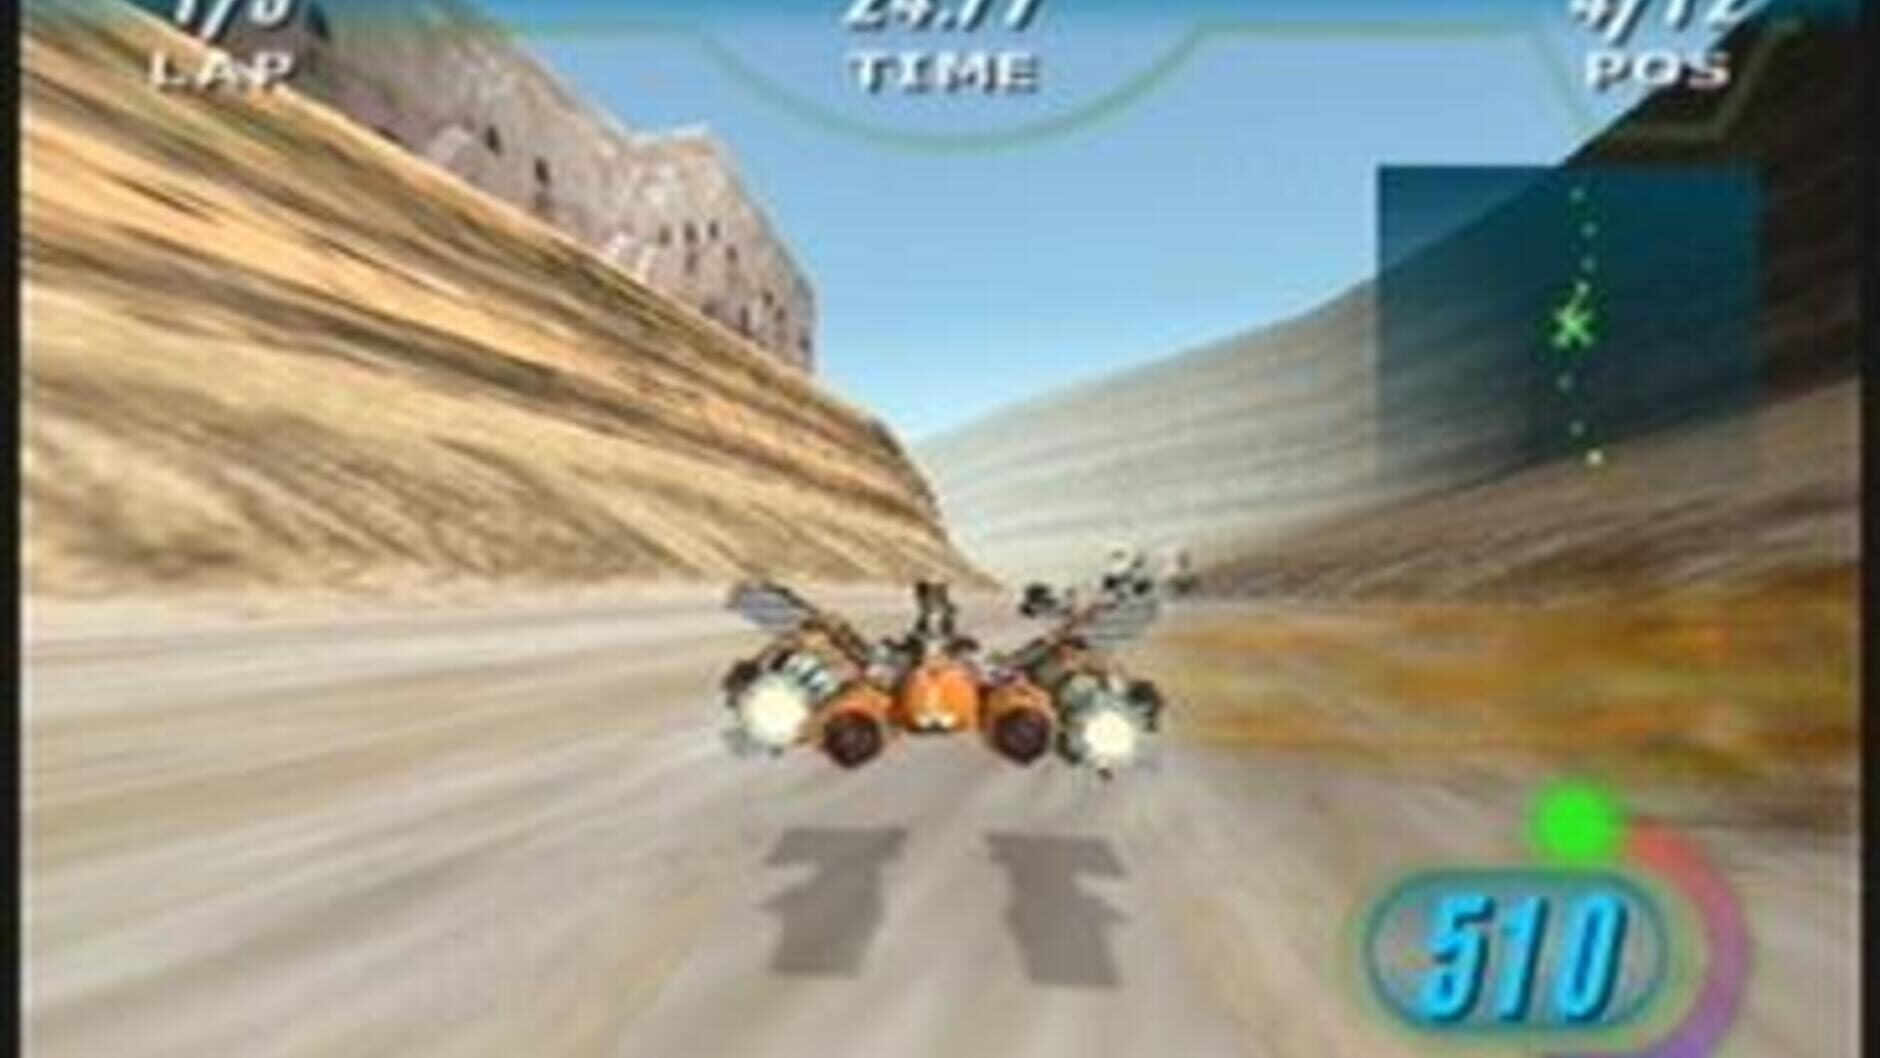 Star Wars: Episode I - Racer - 0